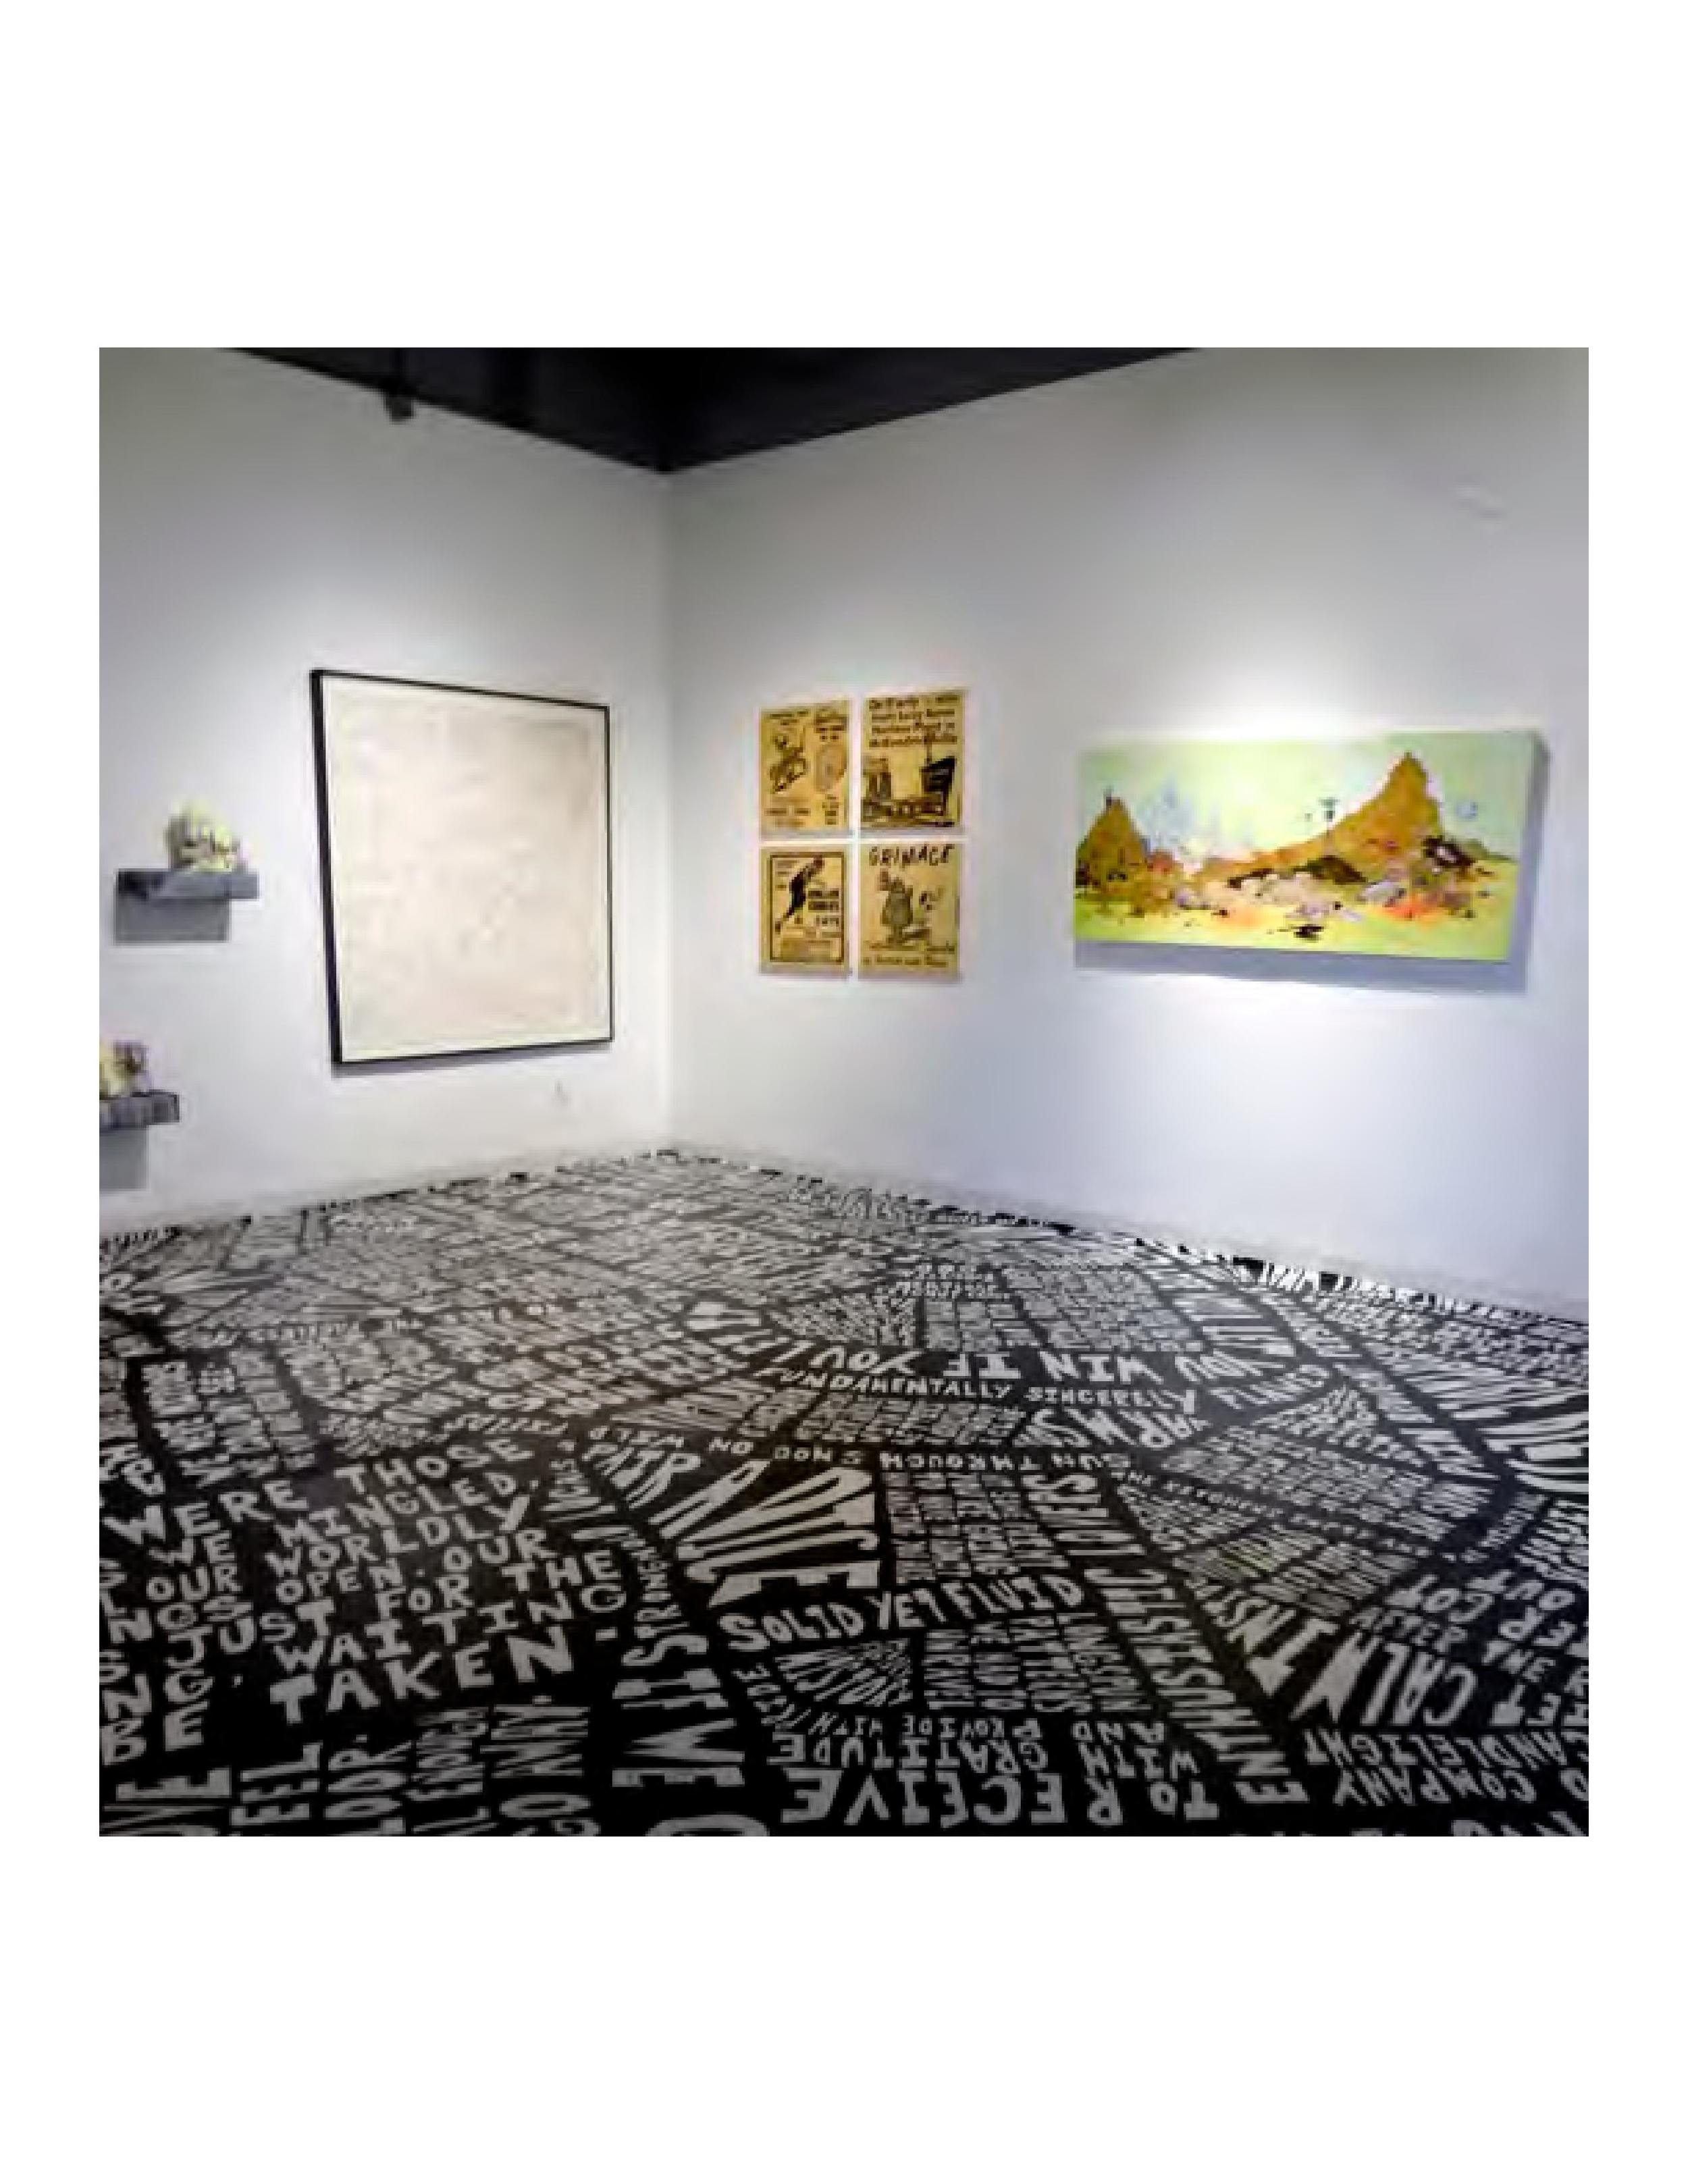 Miami_Art_Basel_Photographs-web-page-043.jpg